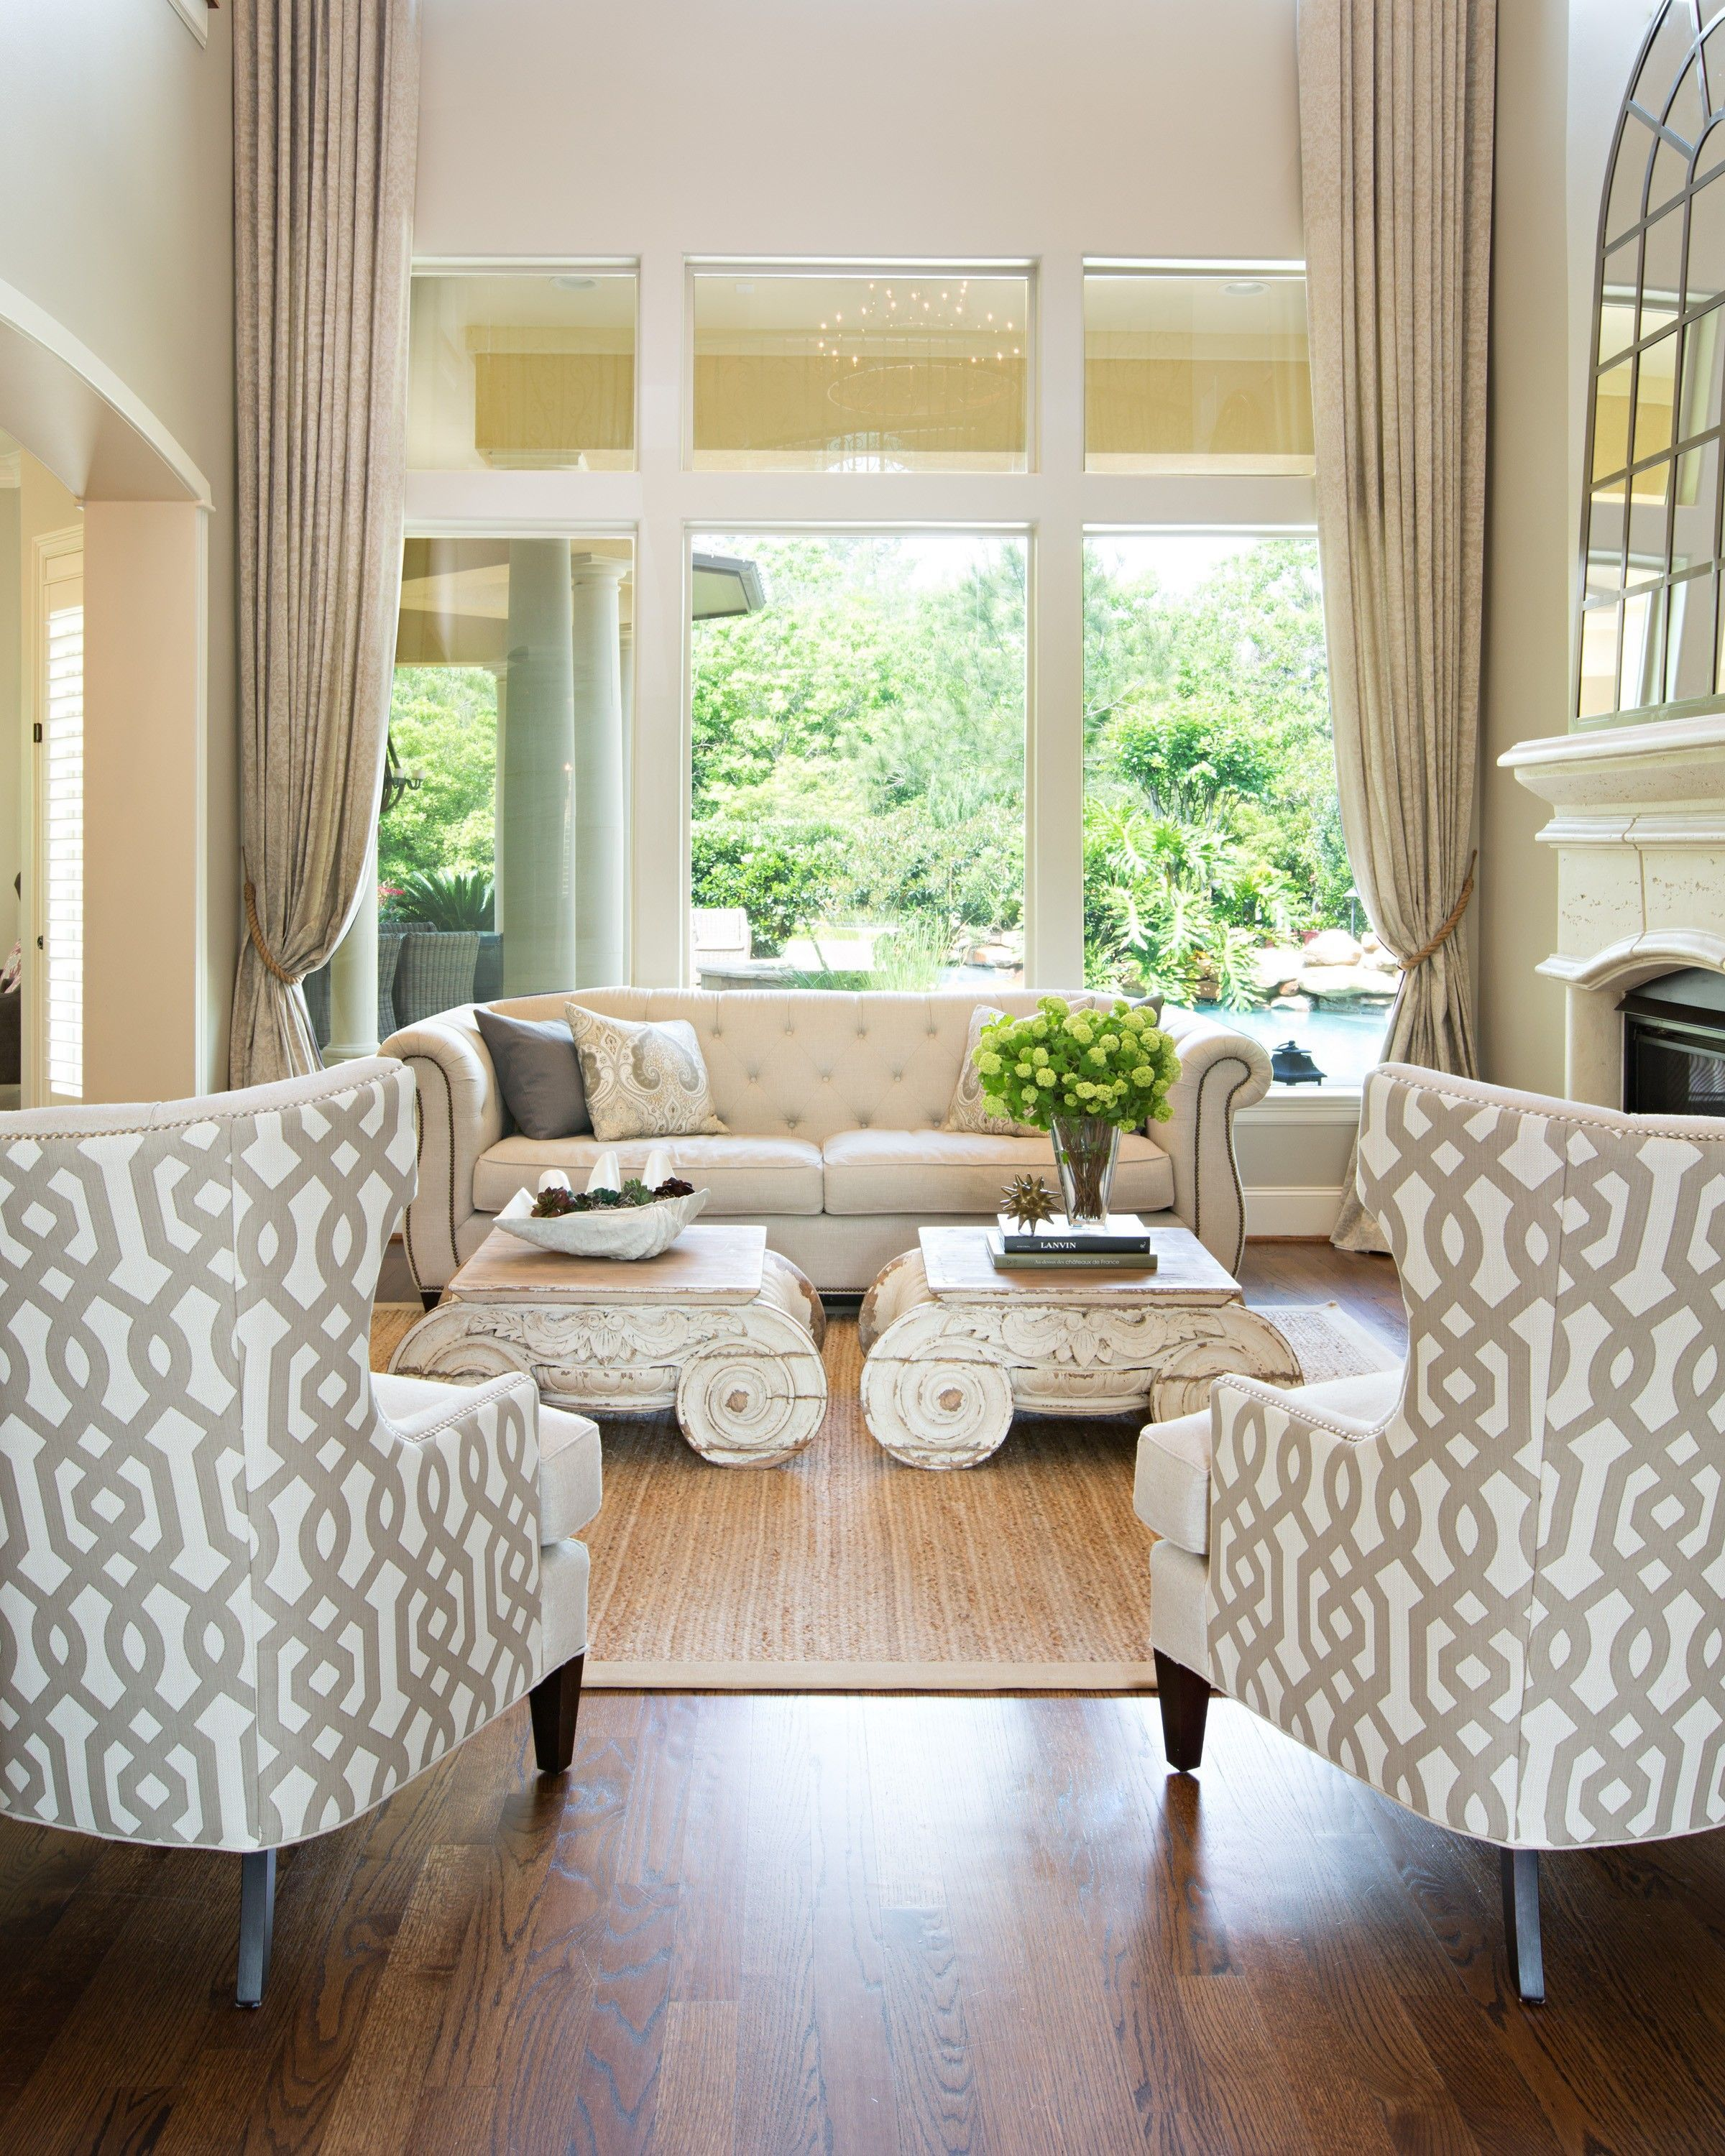 77 Decorative Living Room Chairs 2020 in 2020 | Formal ...